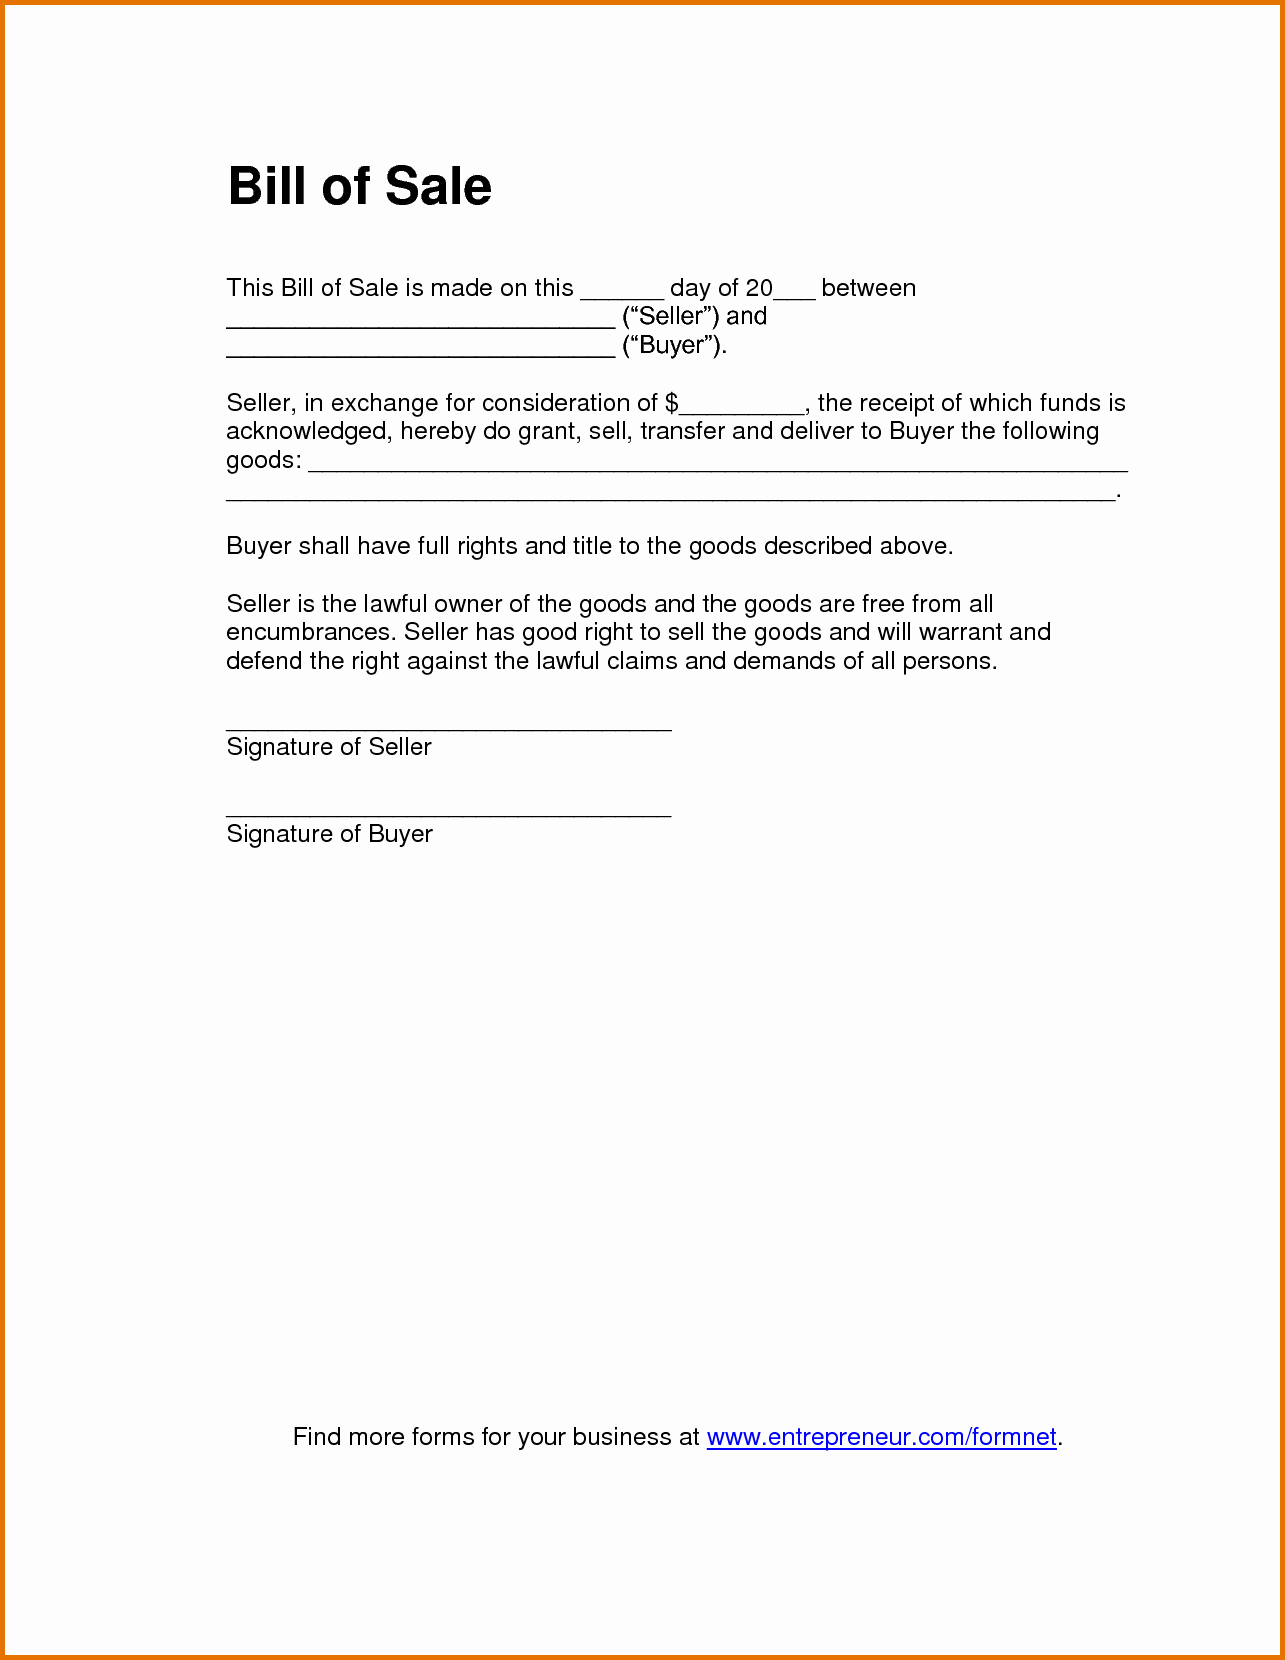 Basic Bill Of Sale Template Unique 8 Bill Of Sale Template Pdfreference Letters Words